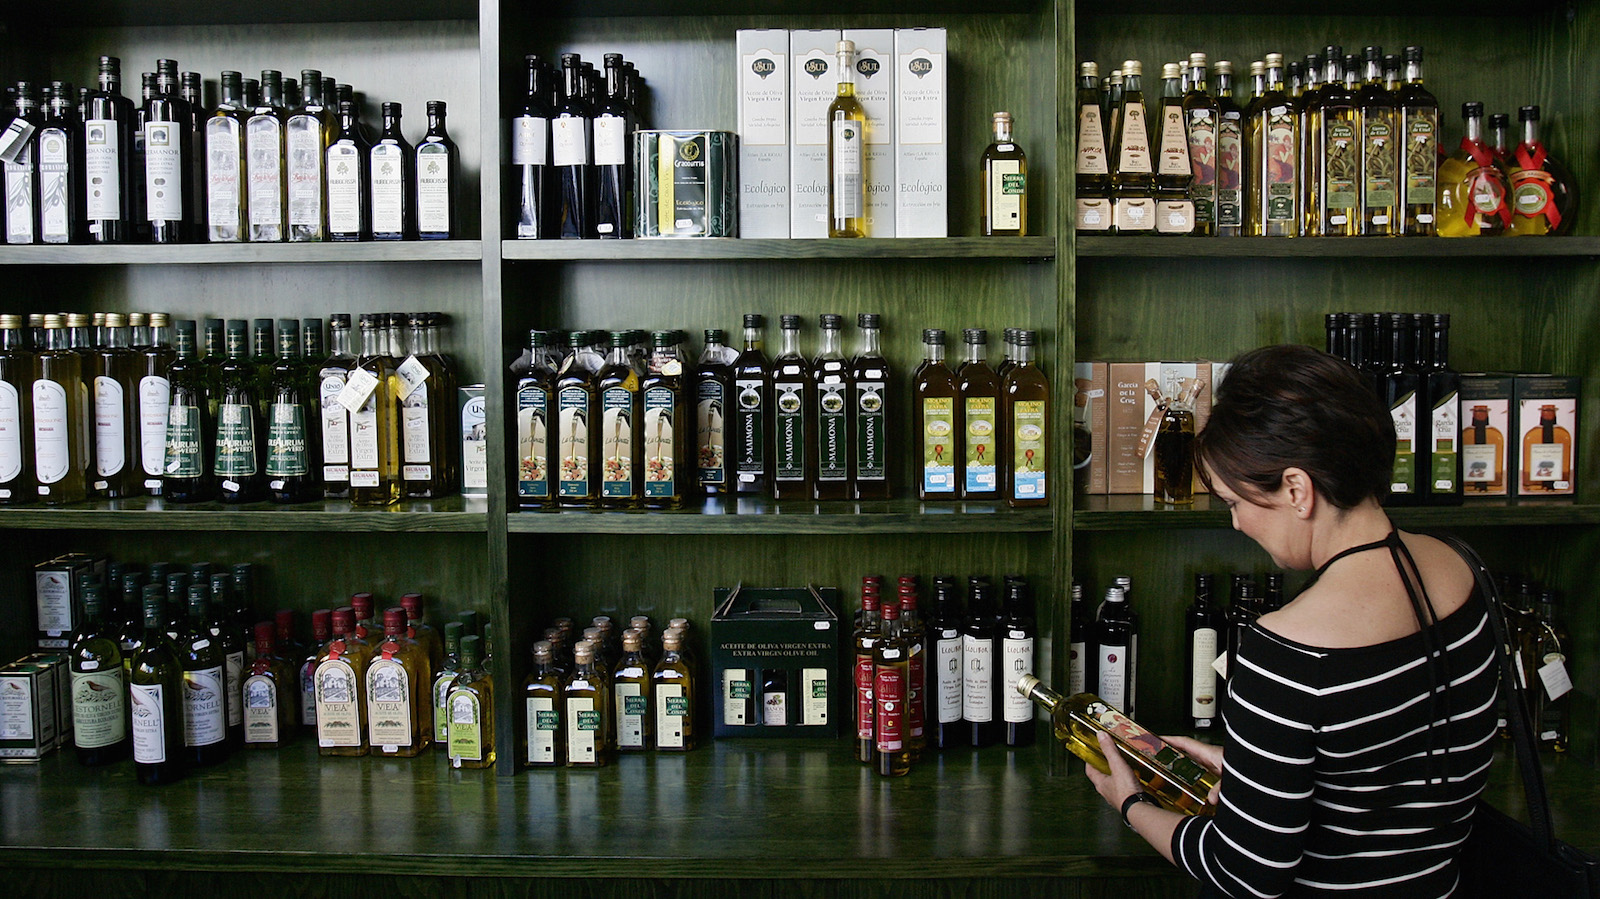 A customer chooses an extra virgin olive oil bottle in a specialized shop in center of Madrid, Friday July 29, 2005. Spain is suffering a drought as a result of the driest winter and spring in the last 60 years raising the olive oil prices.